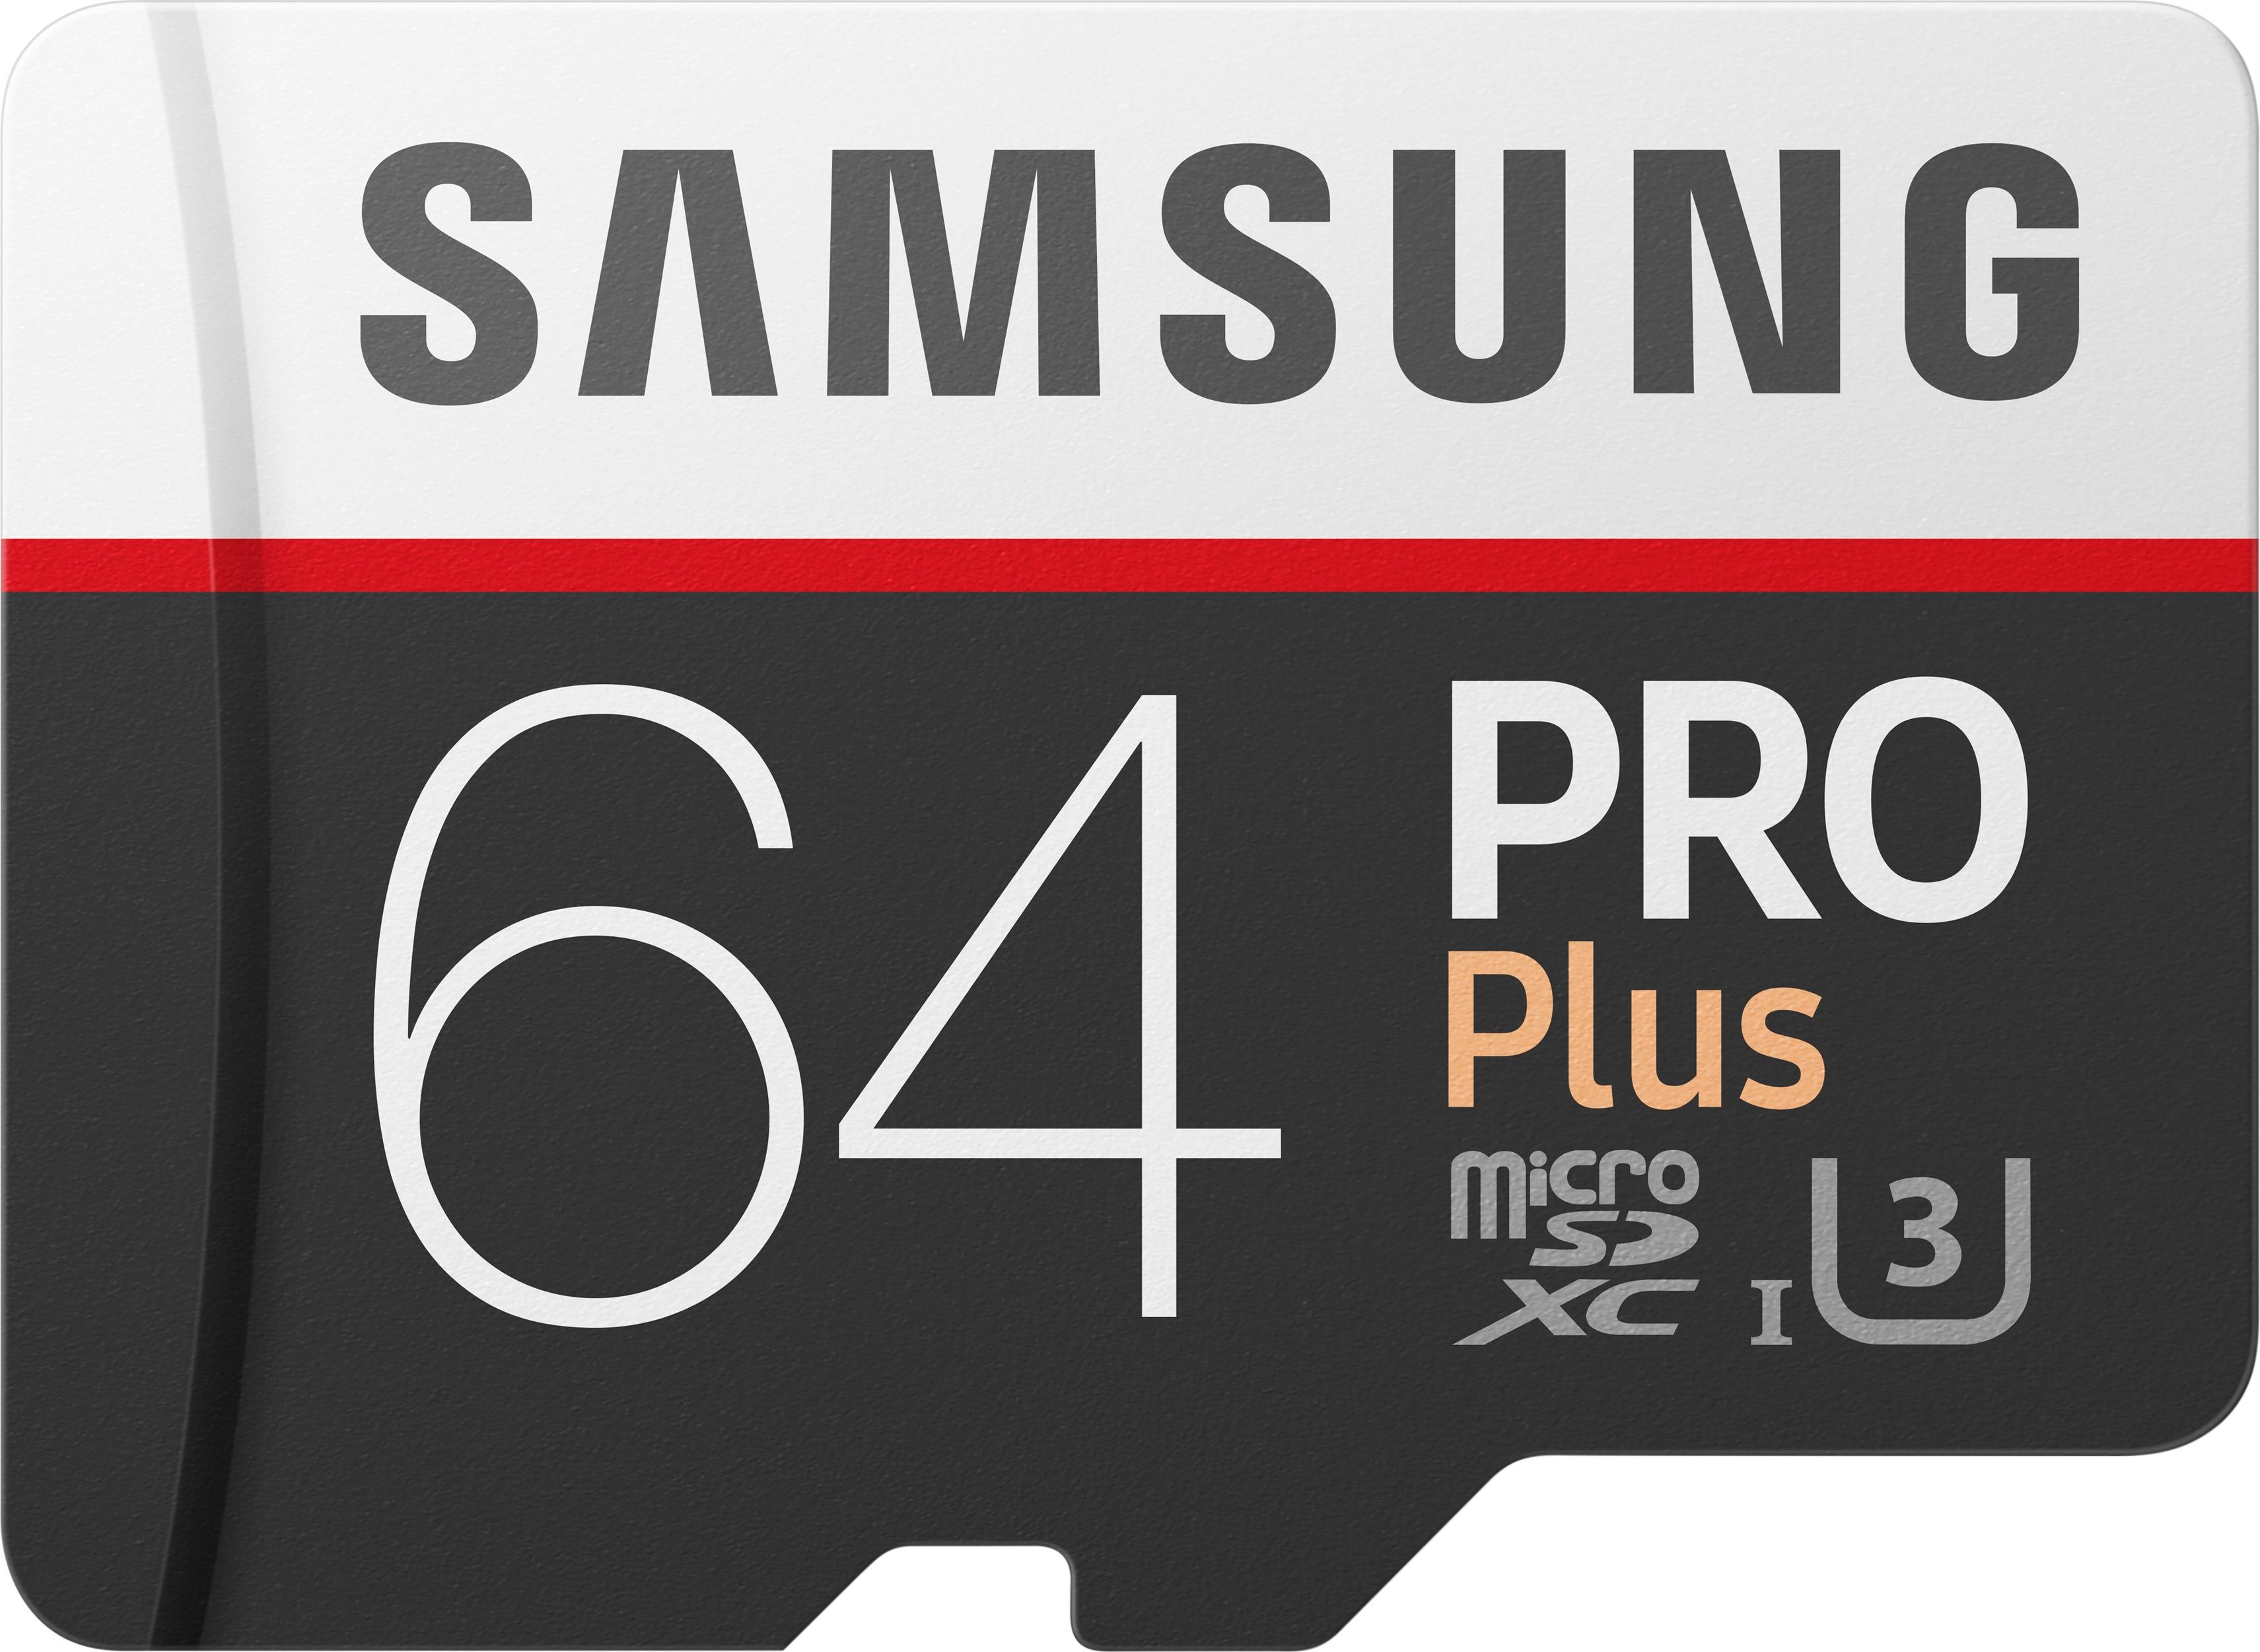 Rousing Samsung Microsdxc Memory Card Micro Sd Card Buy 64gb Sd Card Nintendo Switch 64gb Sd Card Video Capacity dpreview 64 Gig Sd Card